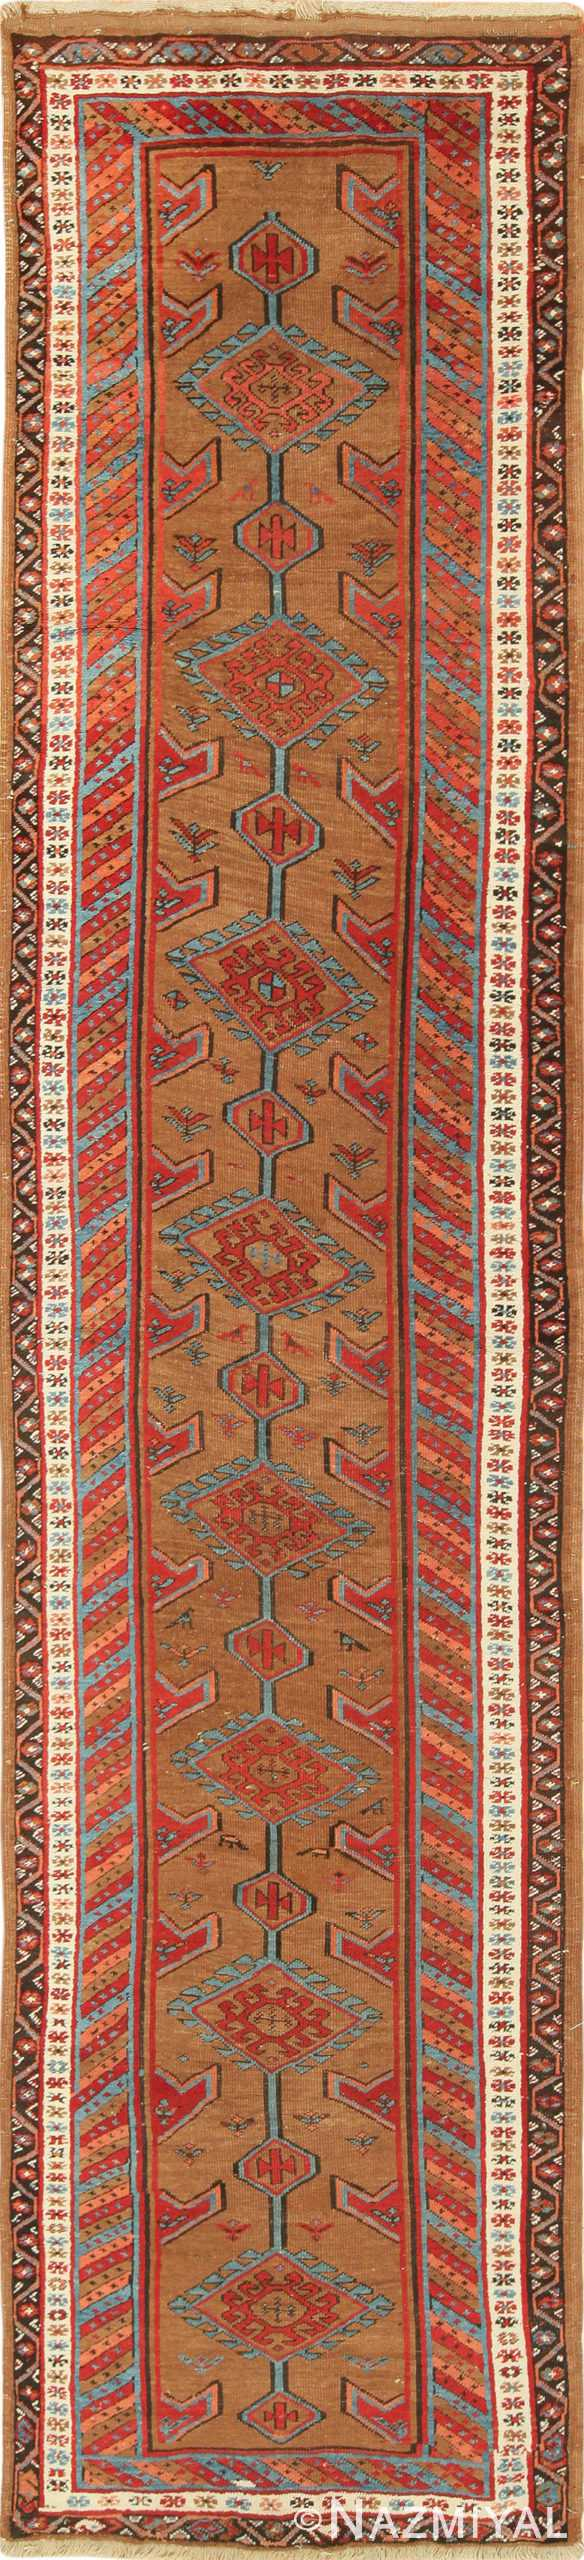 Antique Tribal Persian Bakshaish Runner Rug 49709 by Nazmiyal